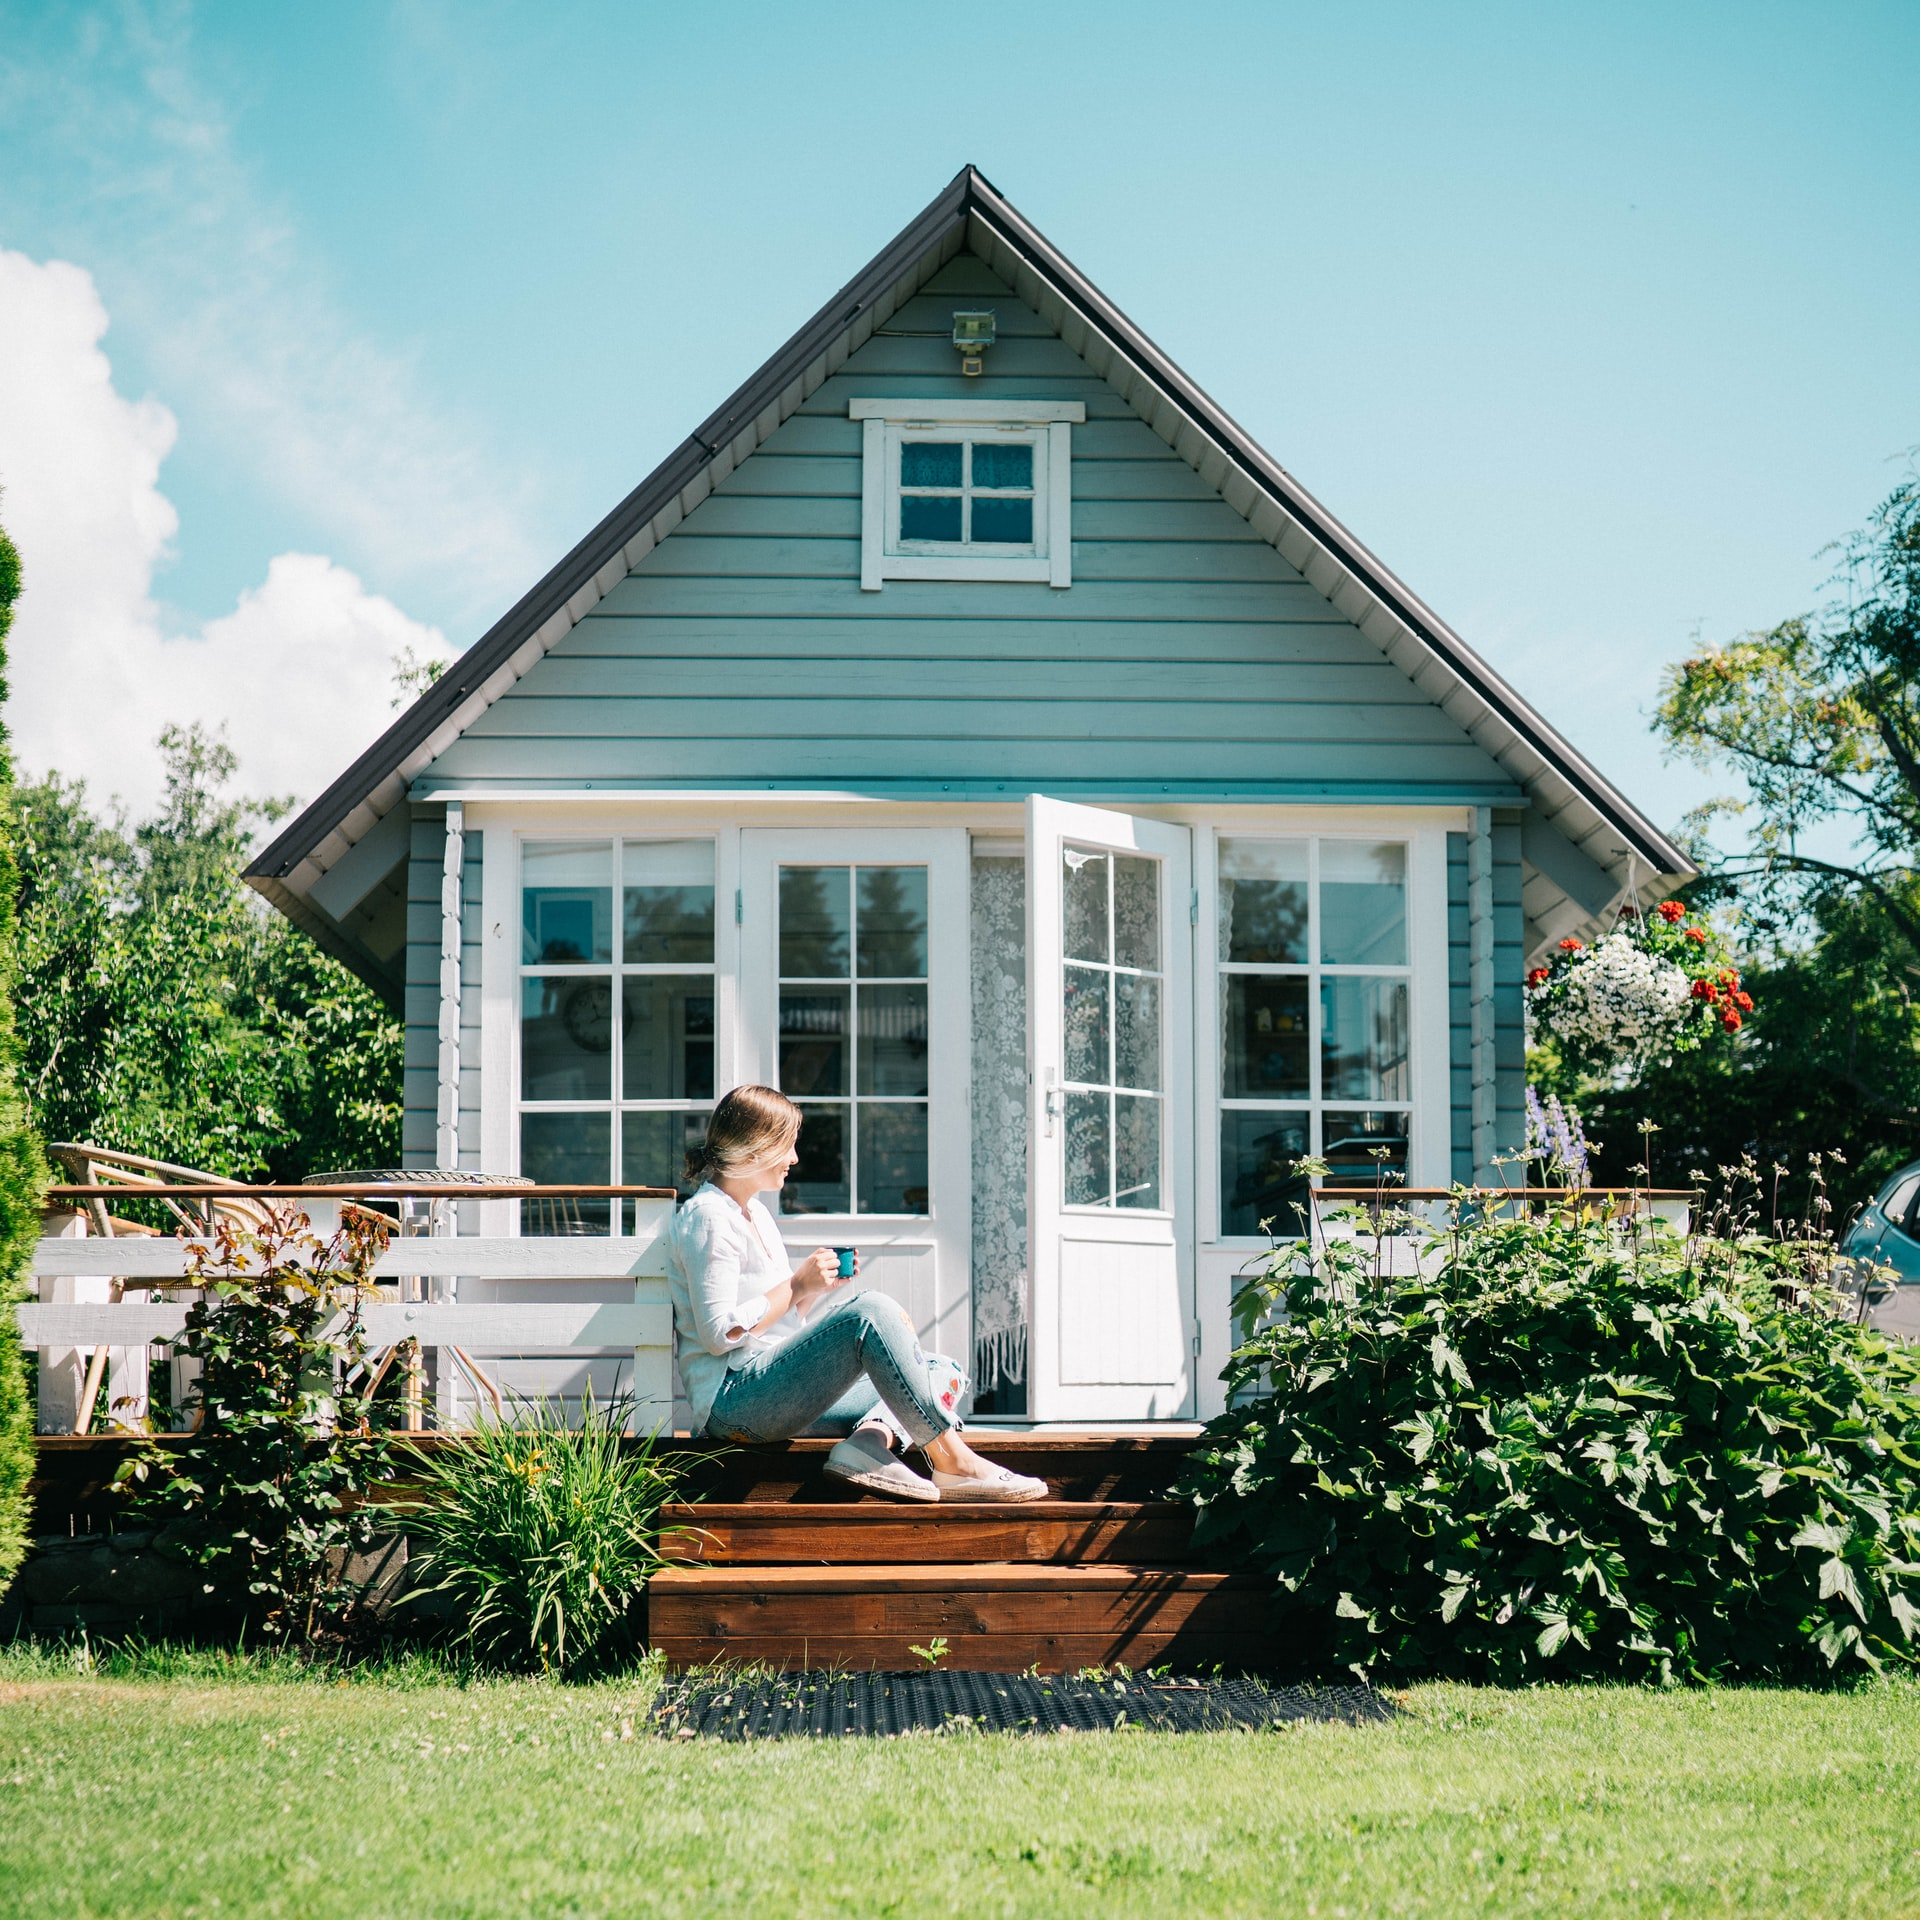 How To: Give Your Home a Facelift